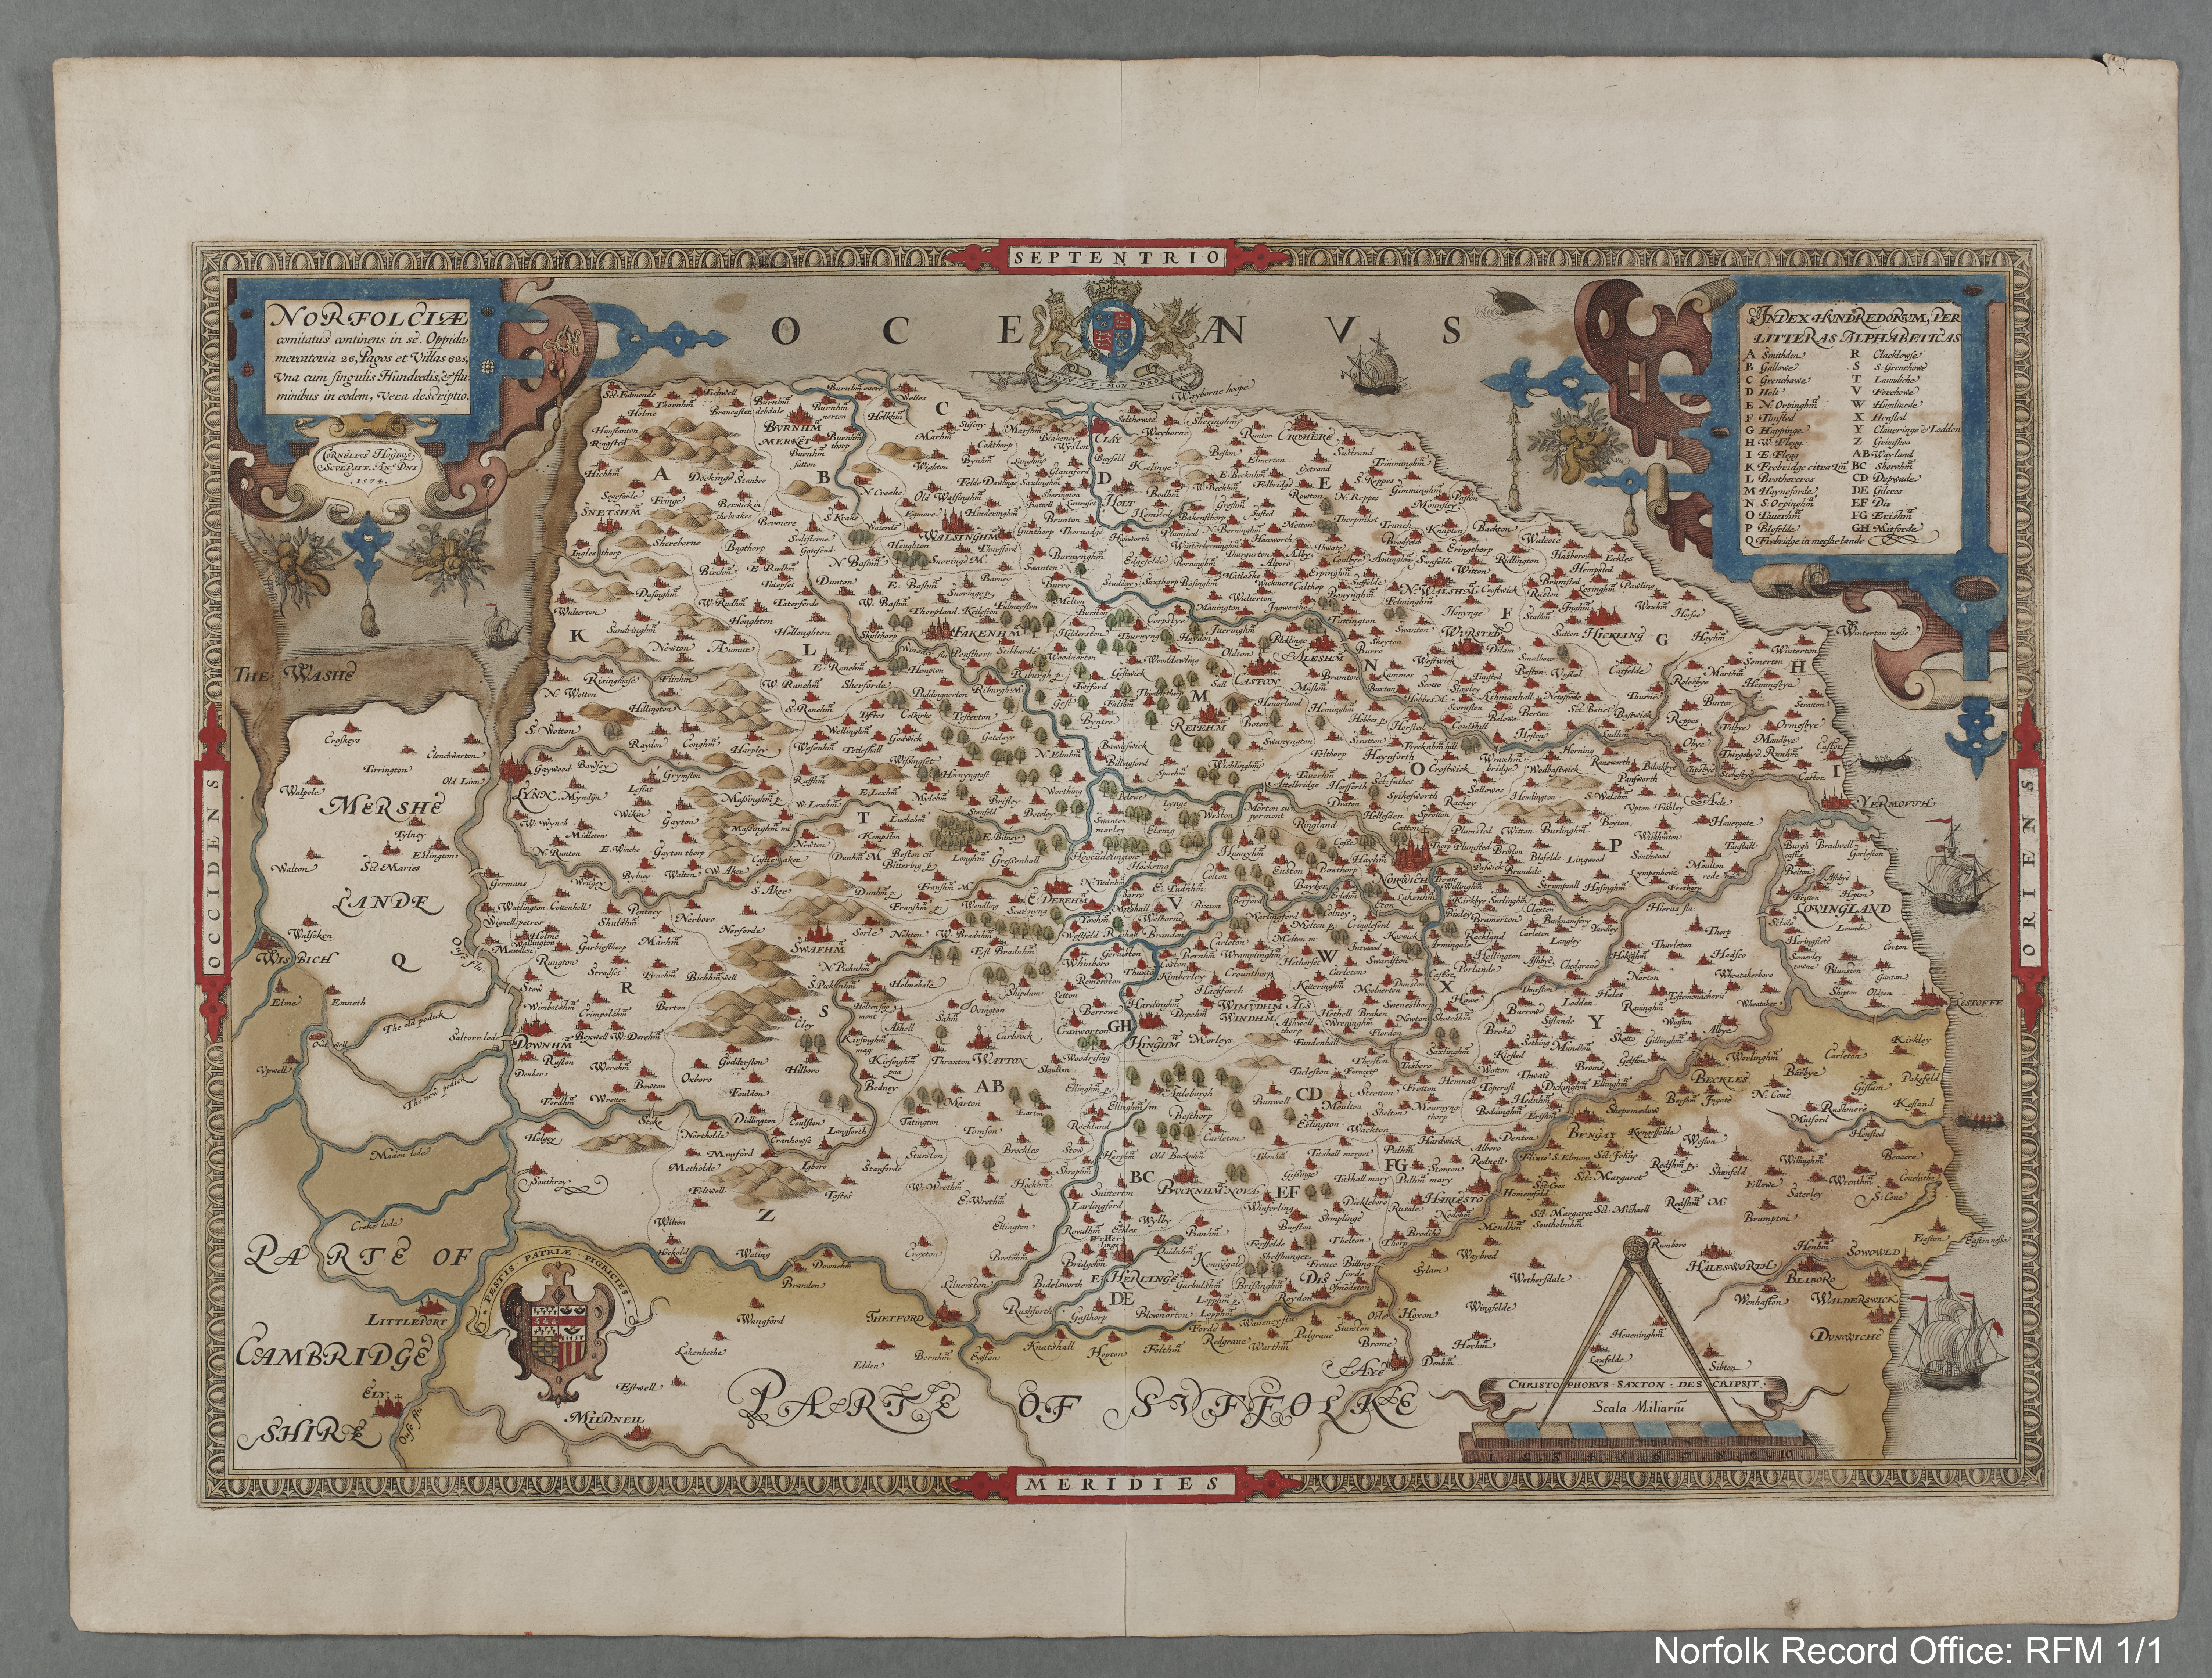 A unique collection of Historic Norfolk Maps the Raymond Frostick